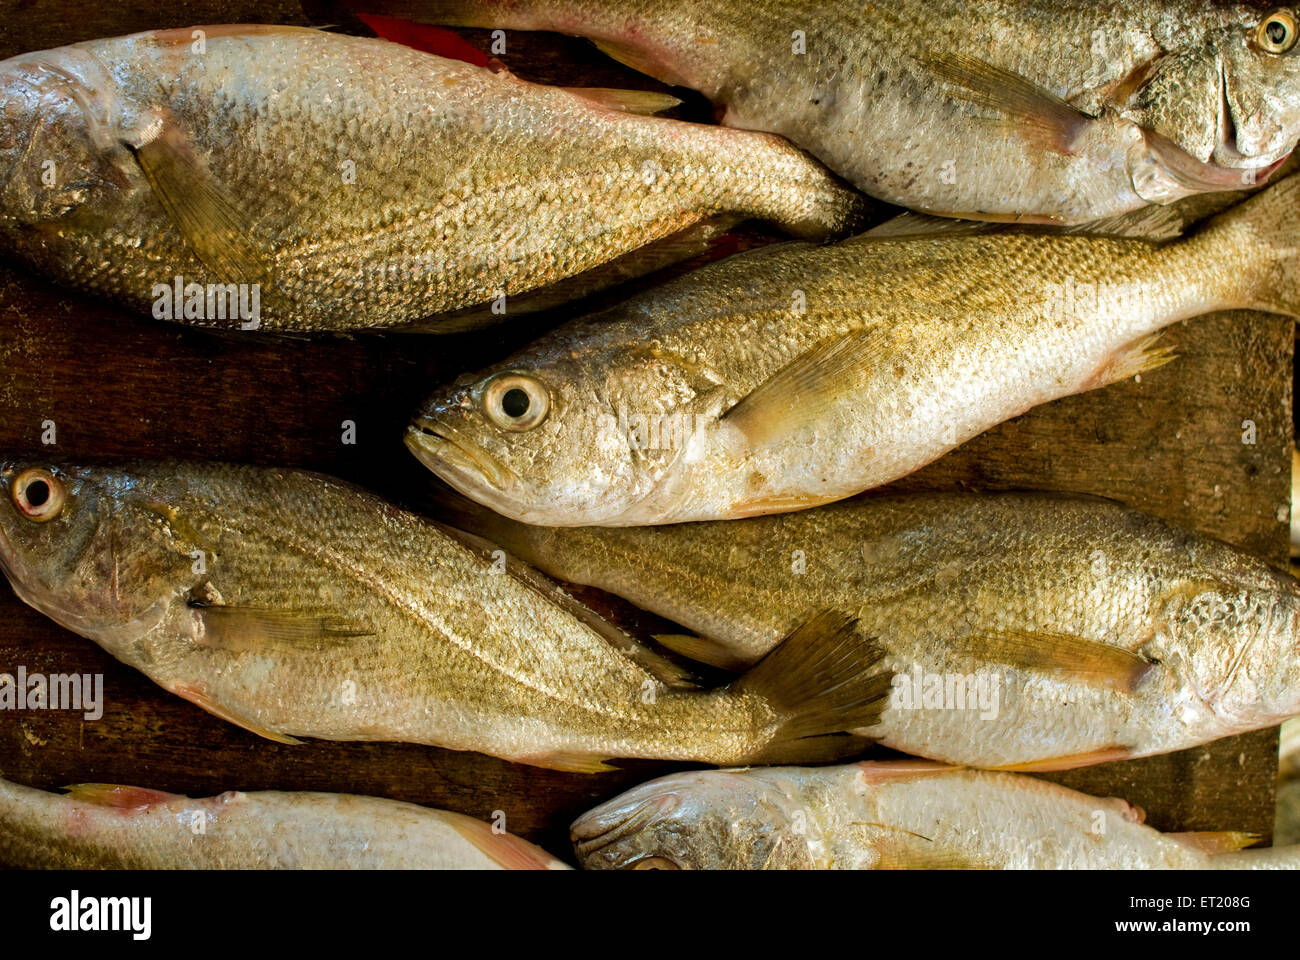 Bhangdha king fish for sale at fish market goa india for King fish market